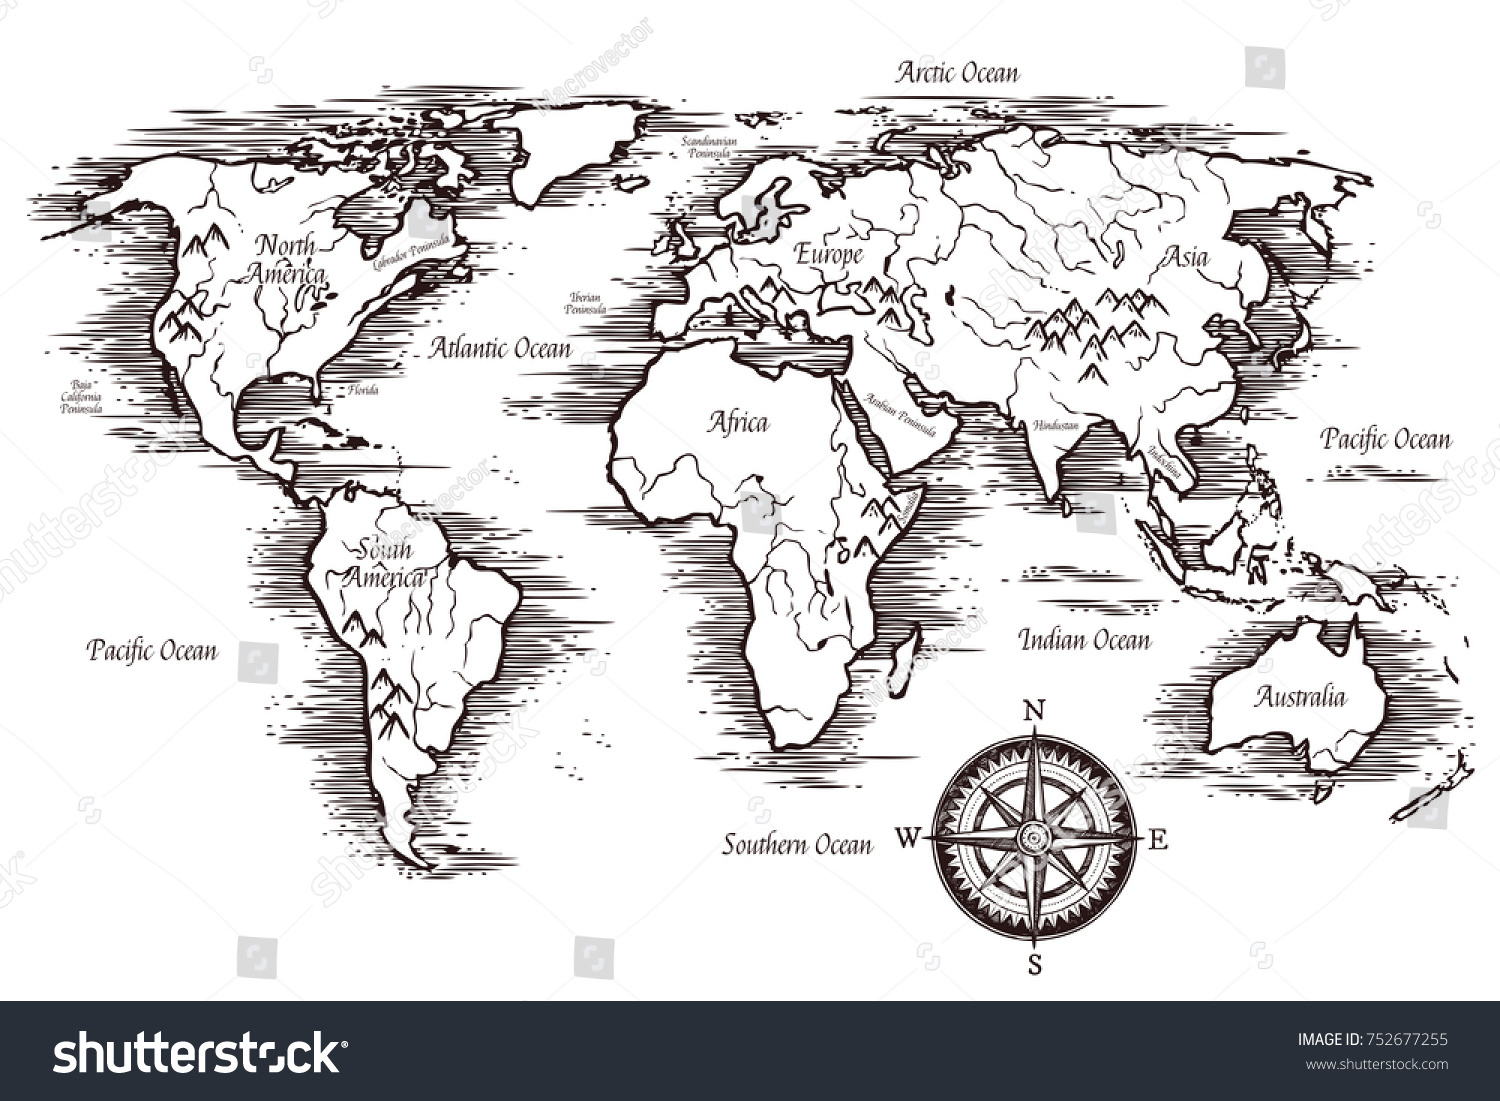 Royalty Free Stock Illustration of Sketch World Map Template Black ...